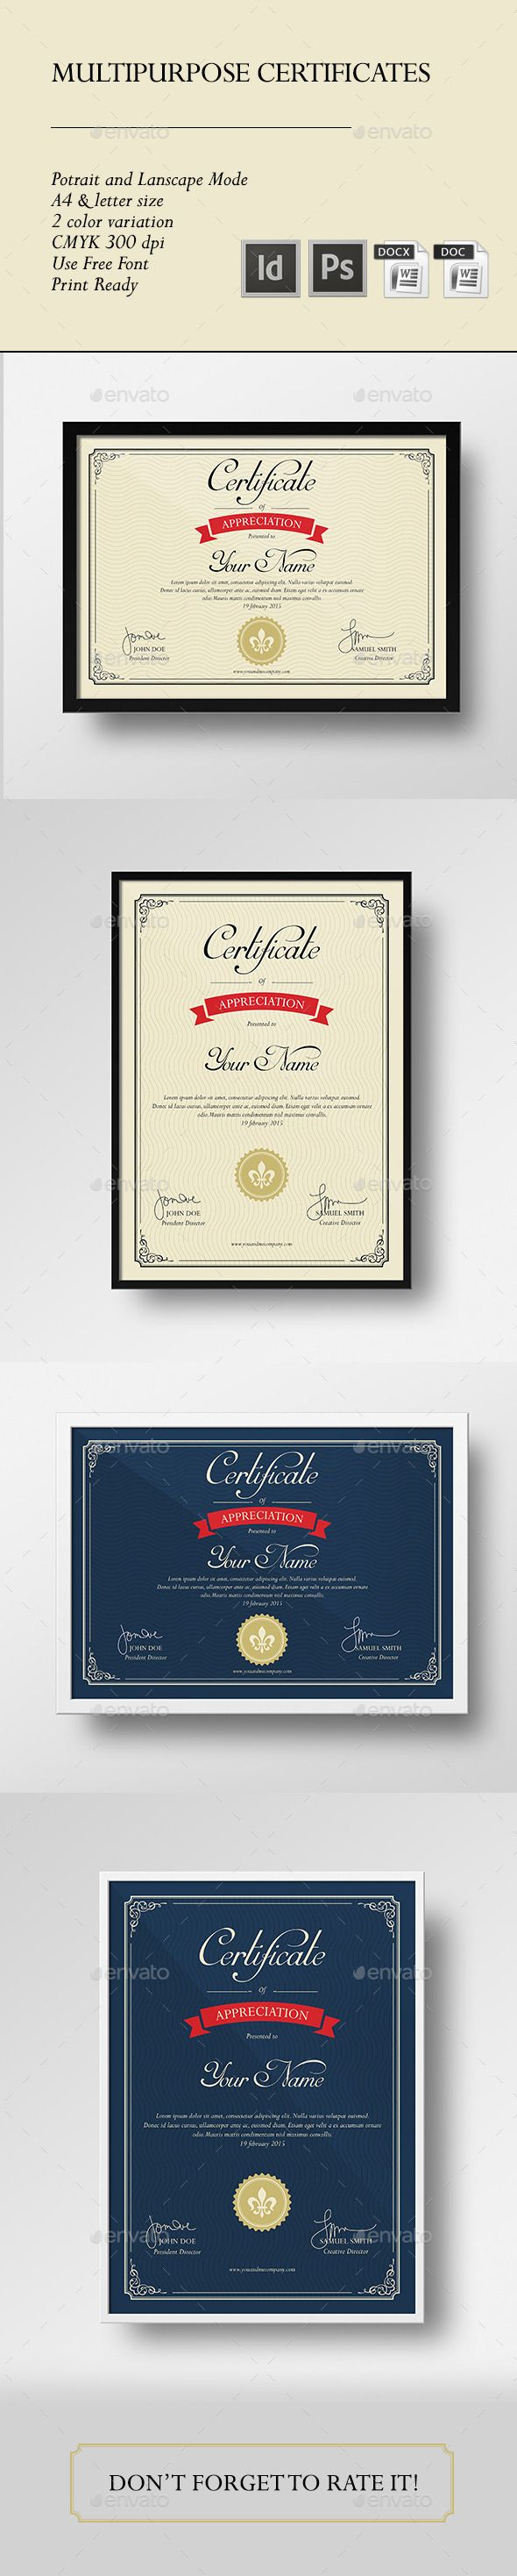 156 best certificate template design images on pinterest multipurpose certificate yelopaper Choice Image